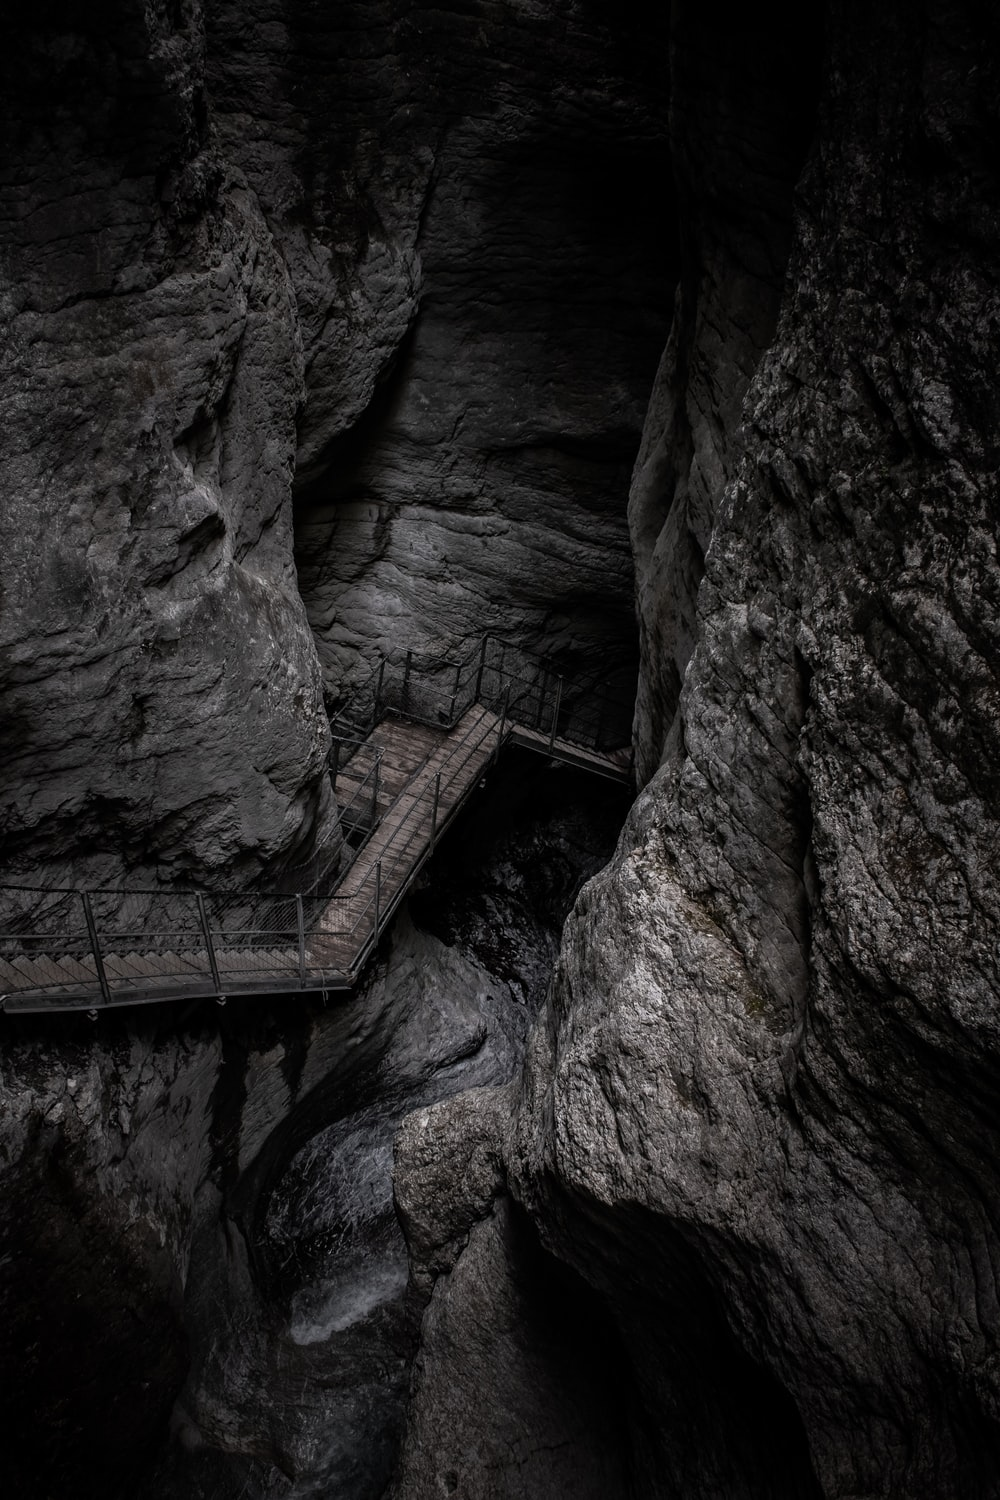 brown wooden ladder on rocky mountain